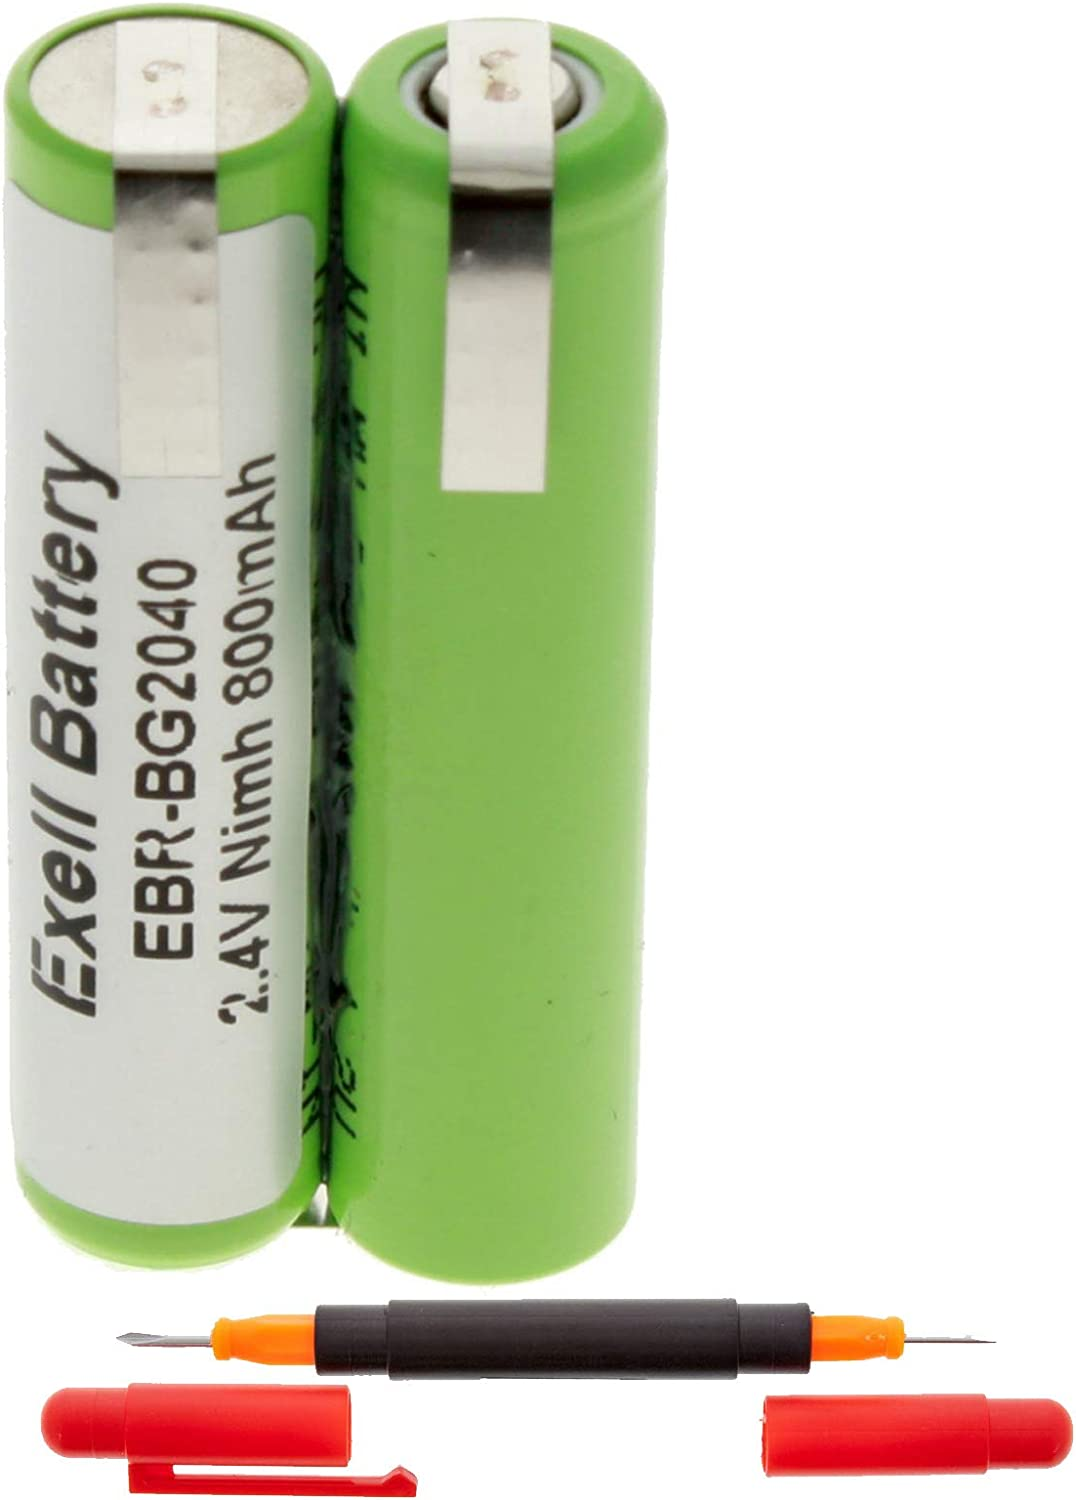 Exell 2.4-Volt Nickel Metal Hydride Razor Battery, EBR-BG2040, 800 mAh, Batteries for Electric Shavers